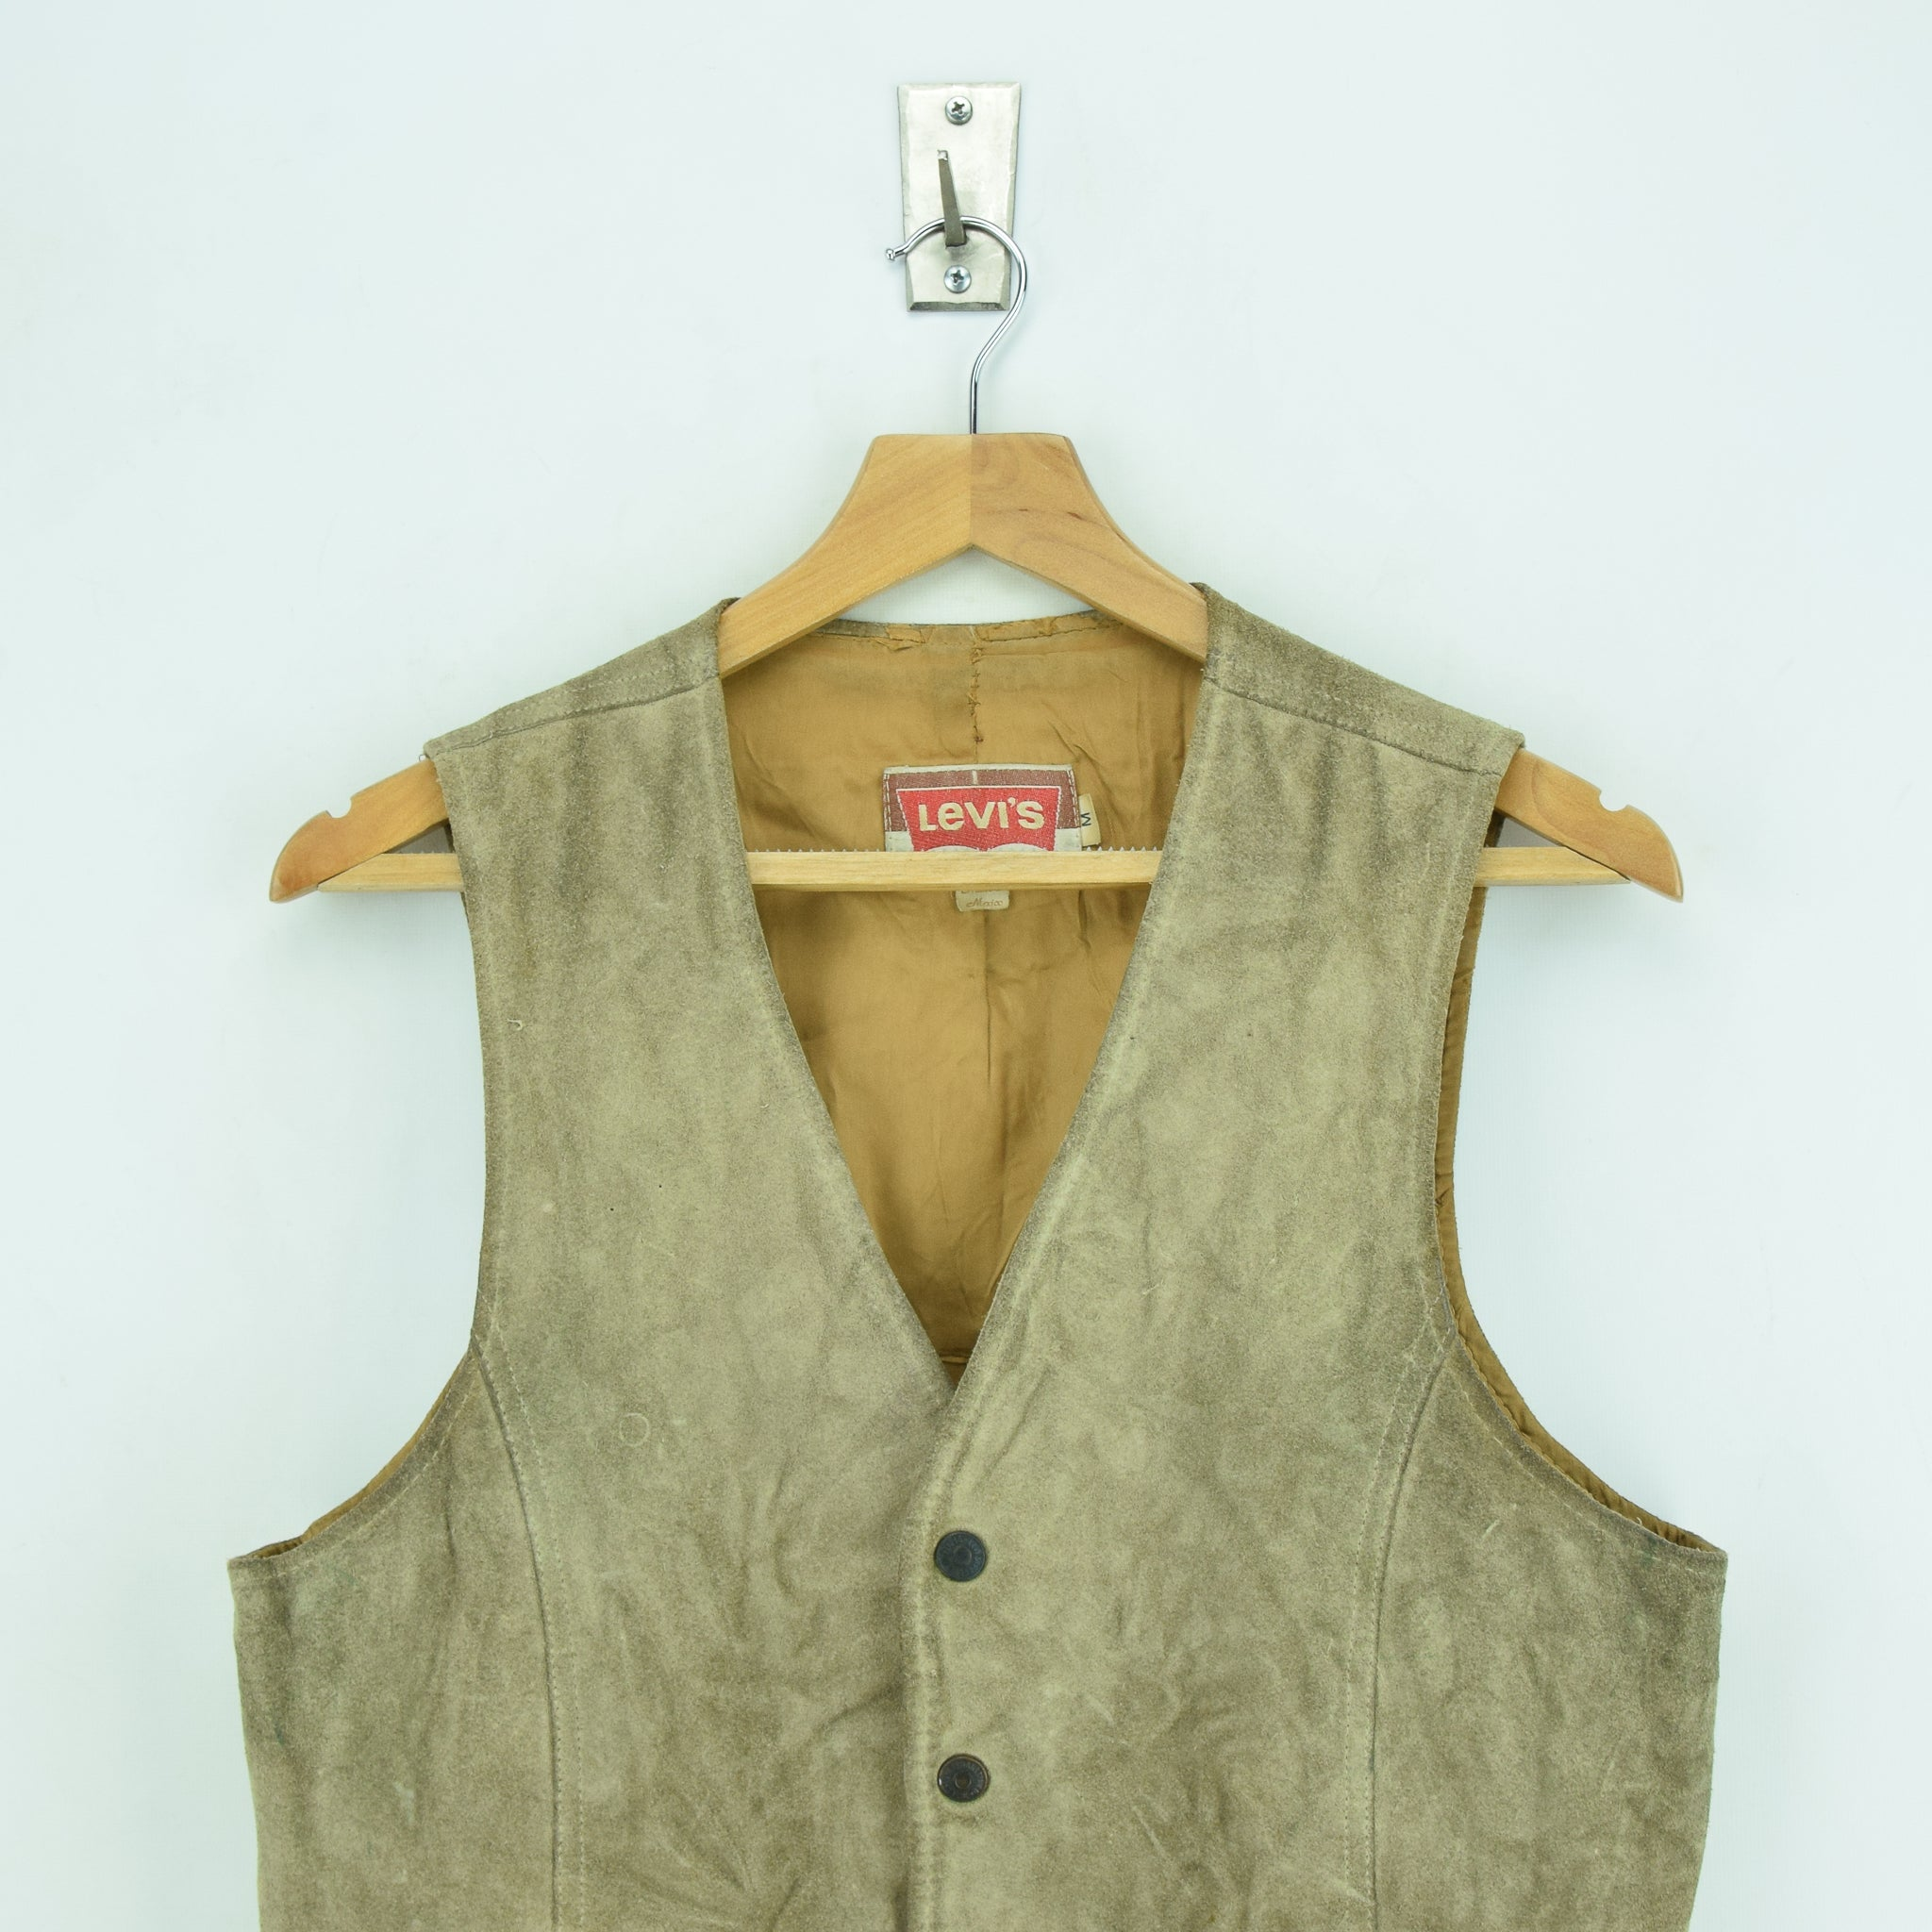 Vintage Levi White Tab Suede Leather Western Rancher Cowboy Waistcoat Vest S chest